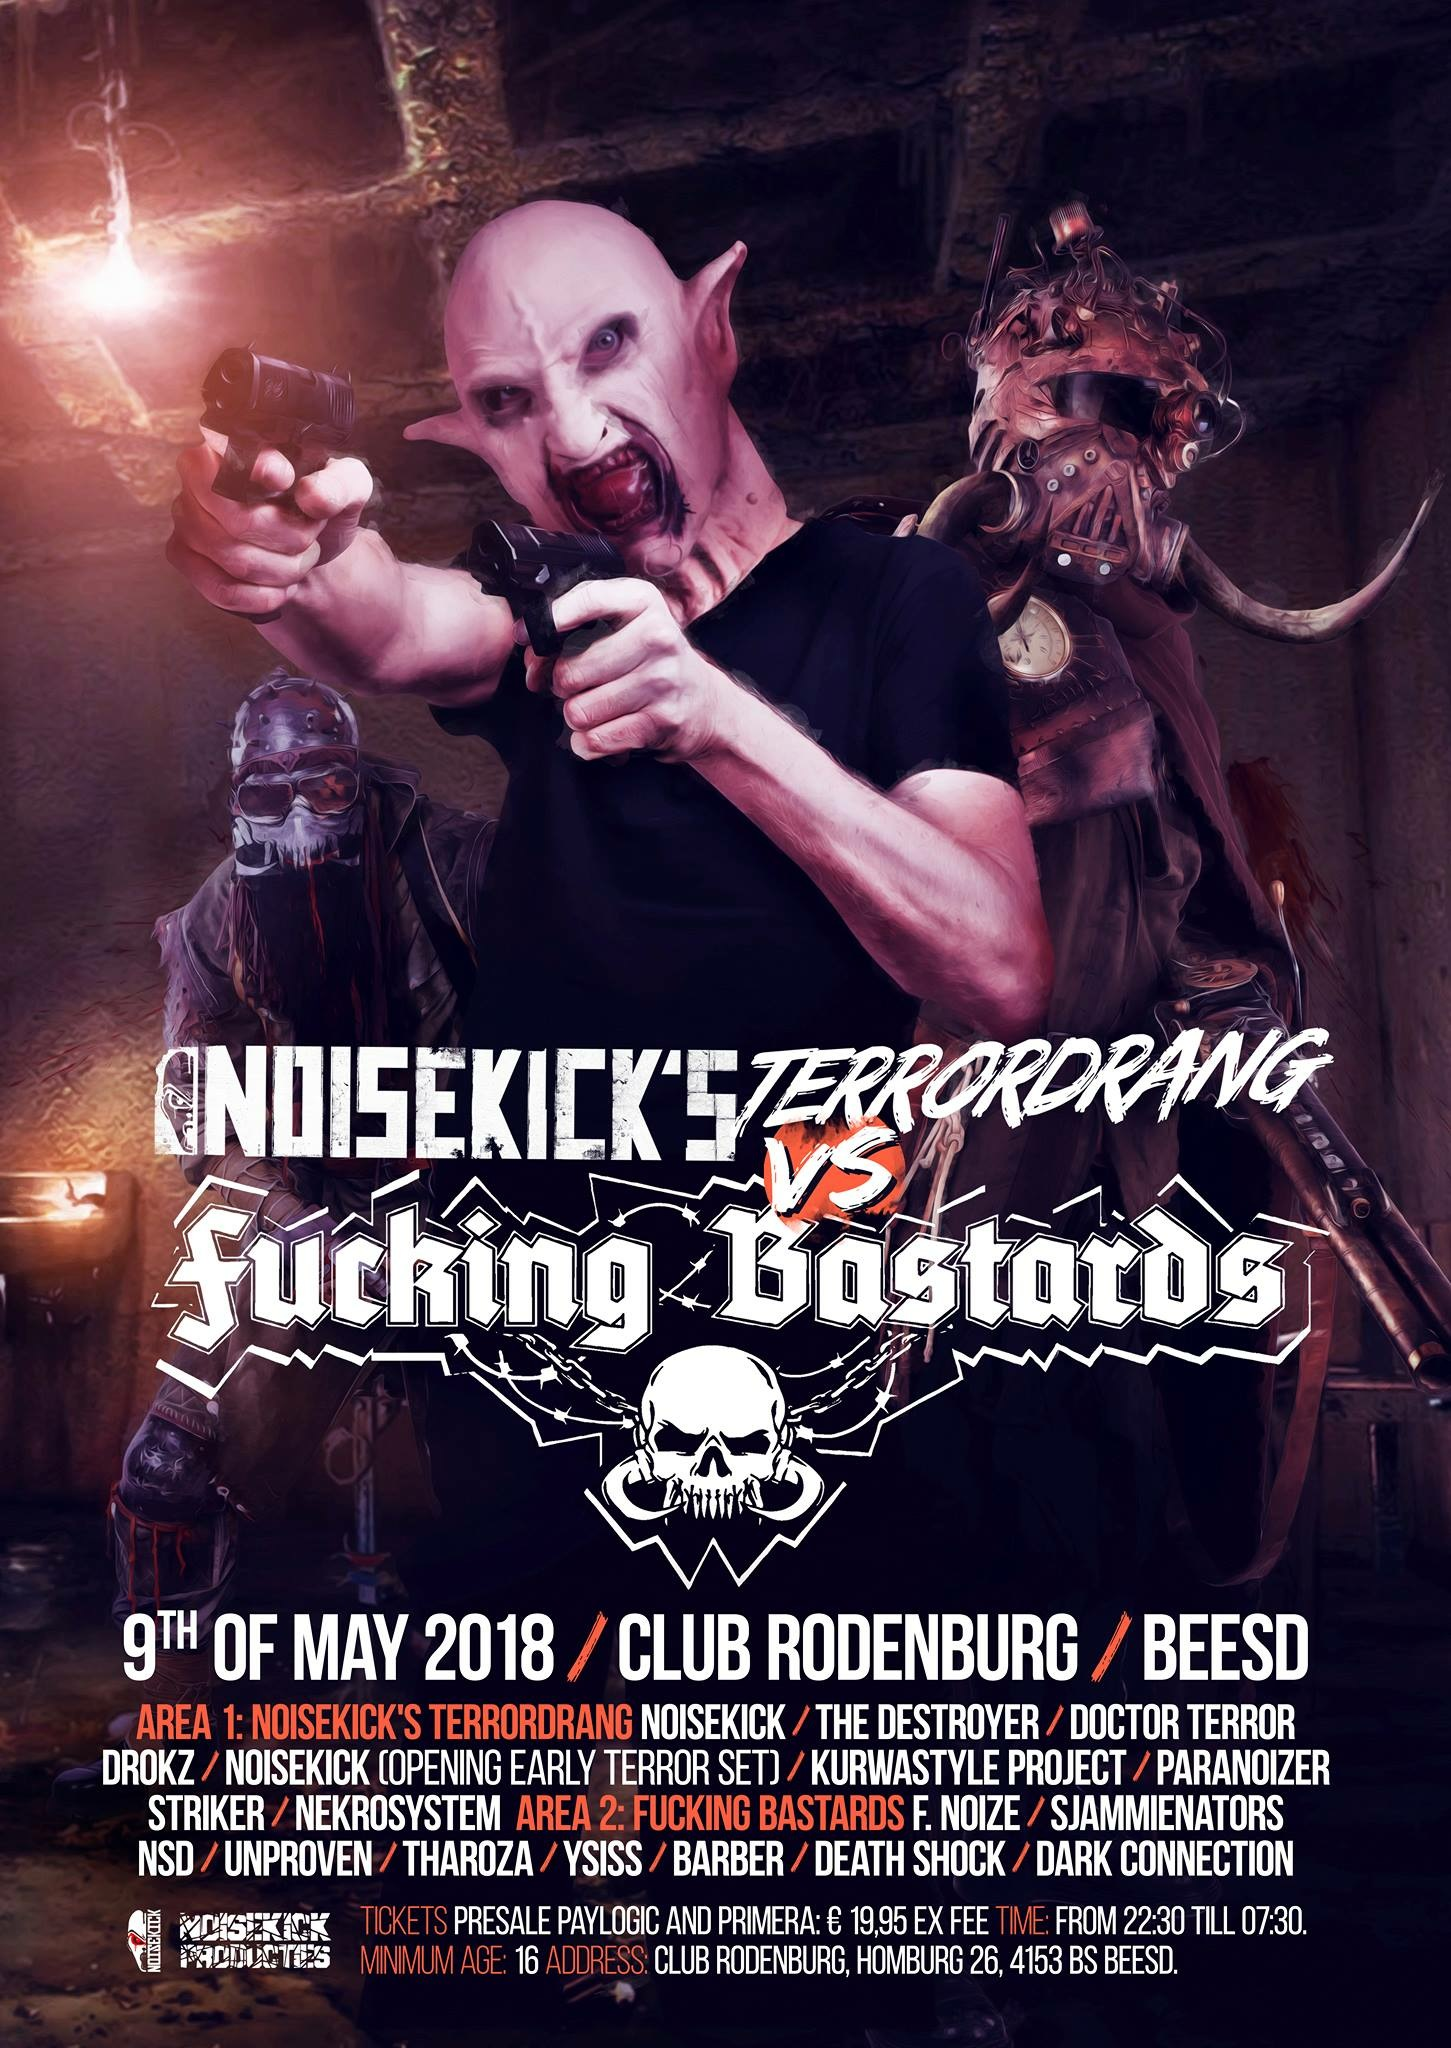 Noisekick terrordrang vs fucking bastard 2018